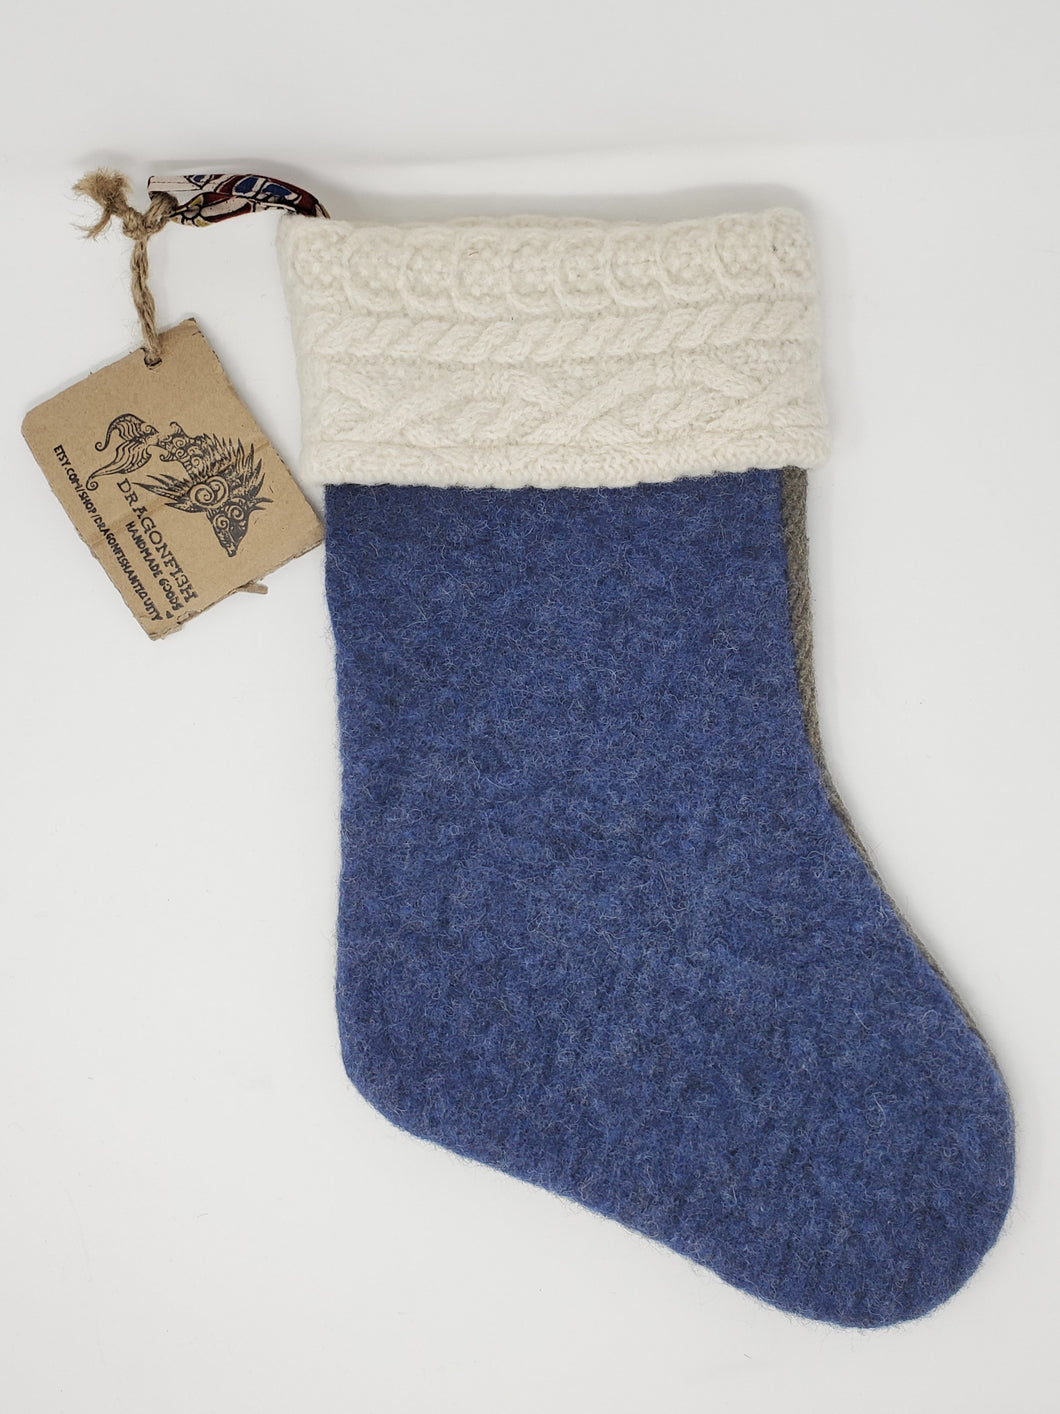 Upcycled Felted Sweater Fabric Holiday Stocking - Quilted Heirloom Blue & Olive & White